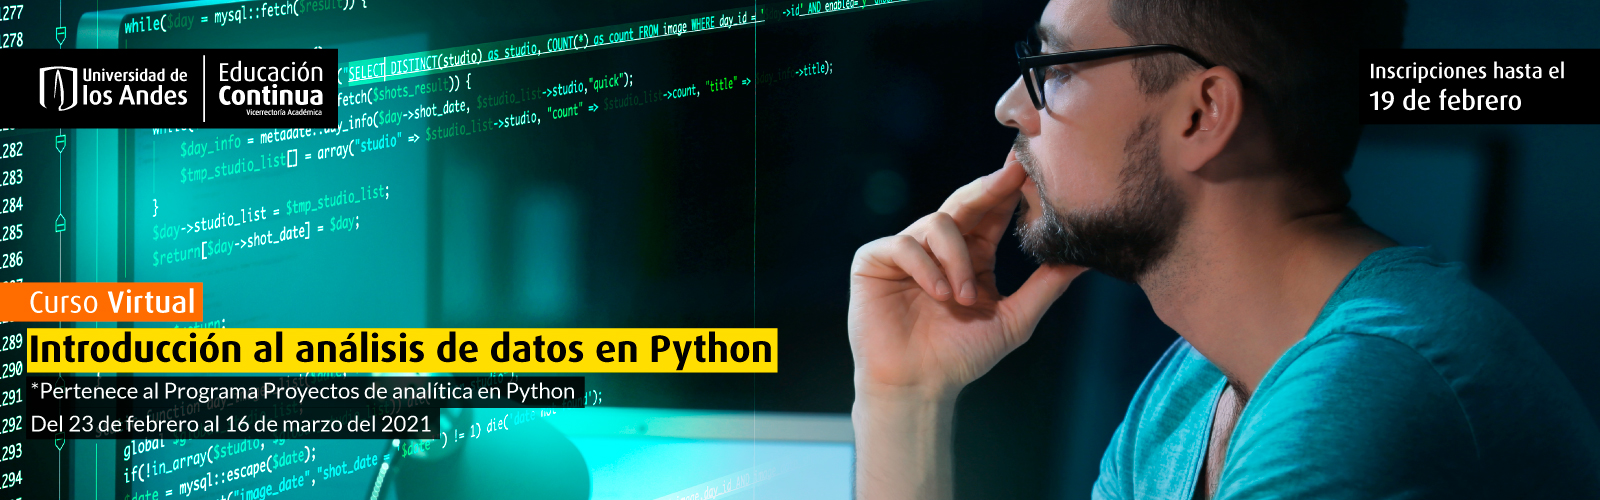 Introduccion-al-analisis-de-datos-en-Python.jpg